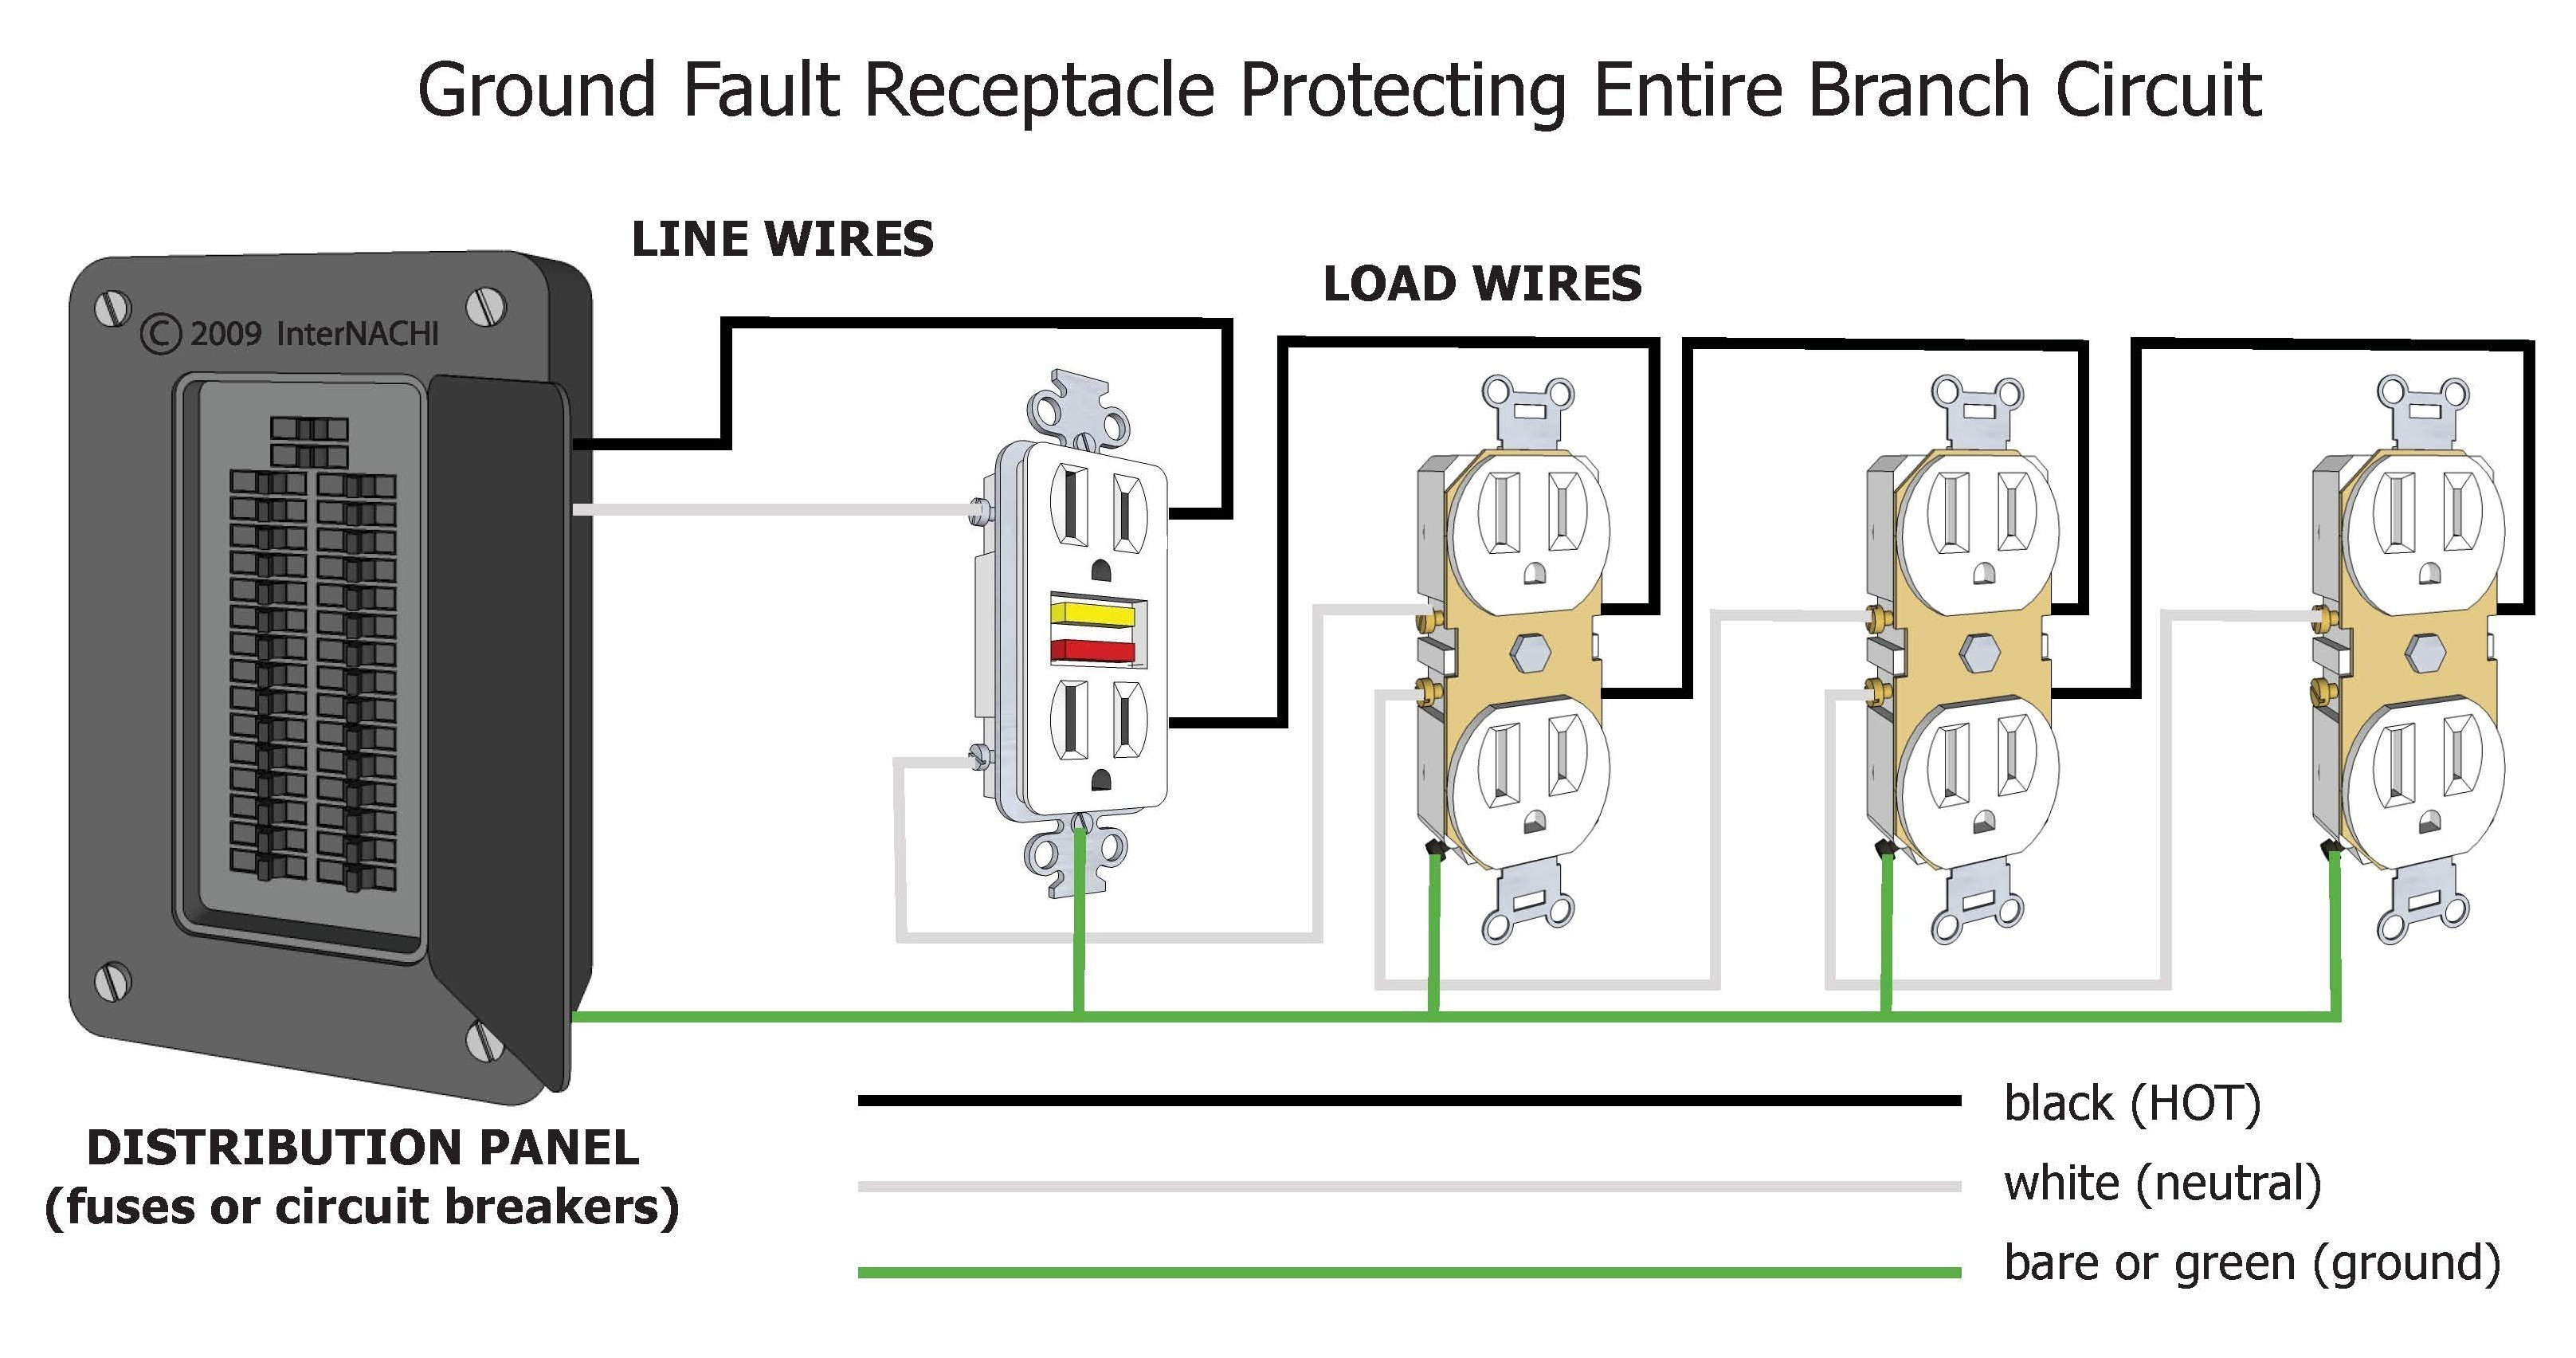 Gfci Breaker Wiring Diagram New Wiring Diagram For A Gfci Breaker Save Circuit Breaker Diagram New